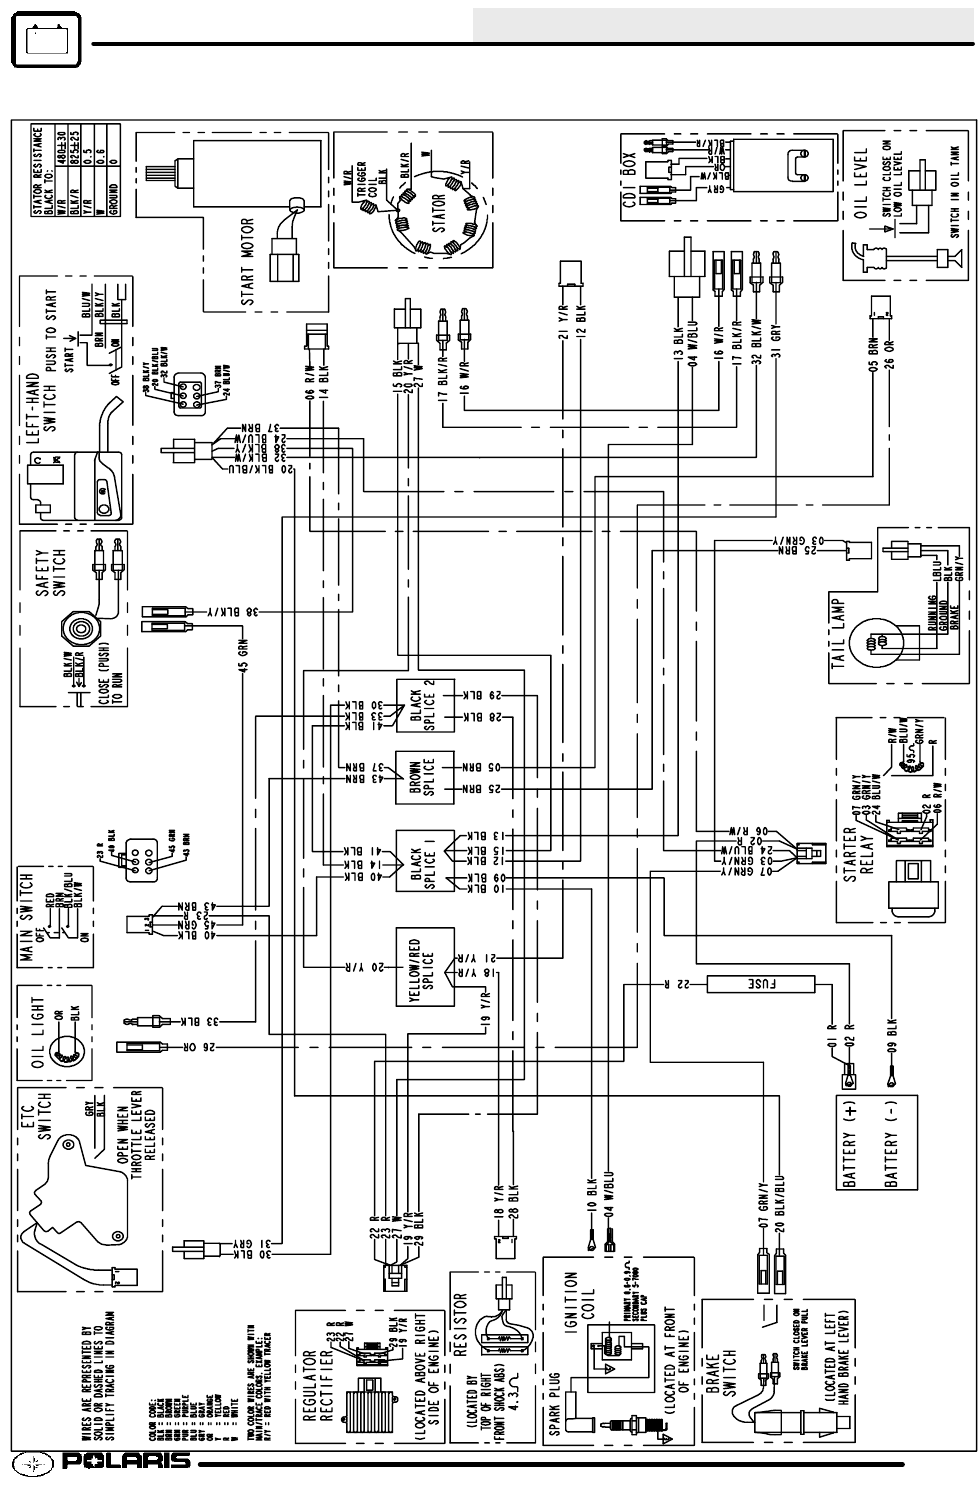 medium resolution of polaris 50 wiring diagram wiring diagram expert wiring diagram for polaris sportsman 500 polaris 50 wiring